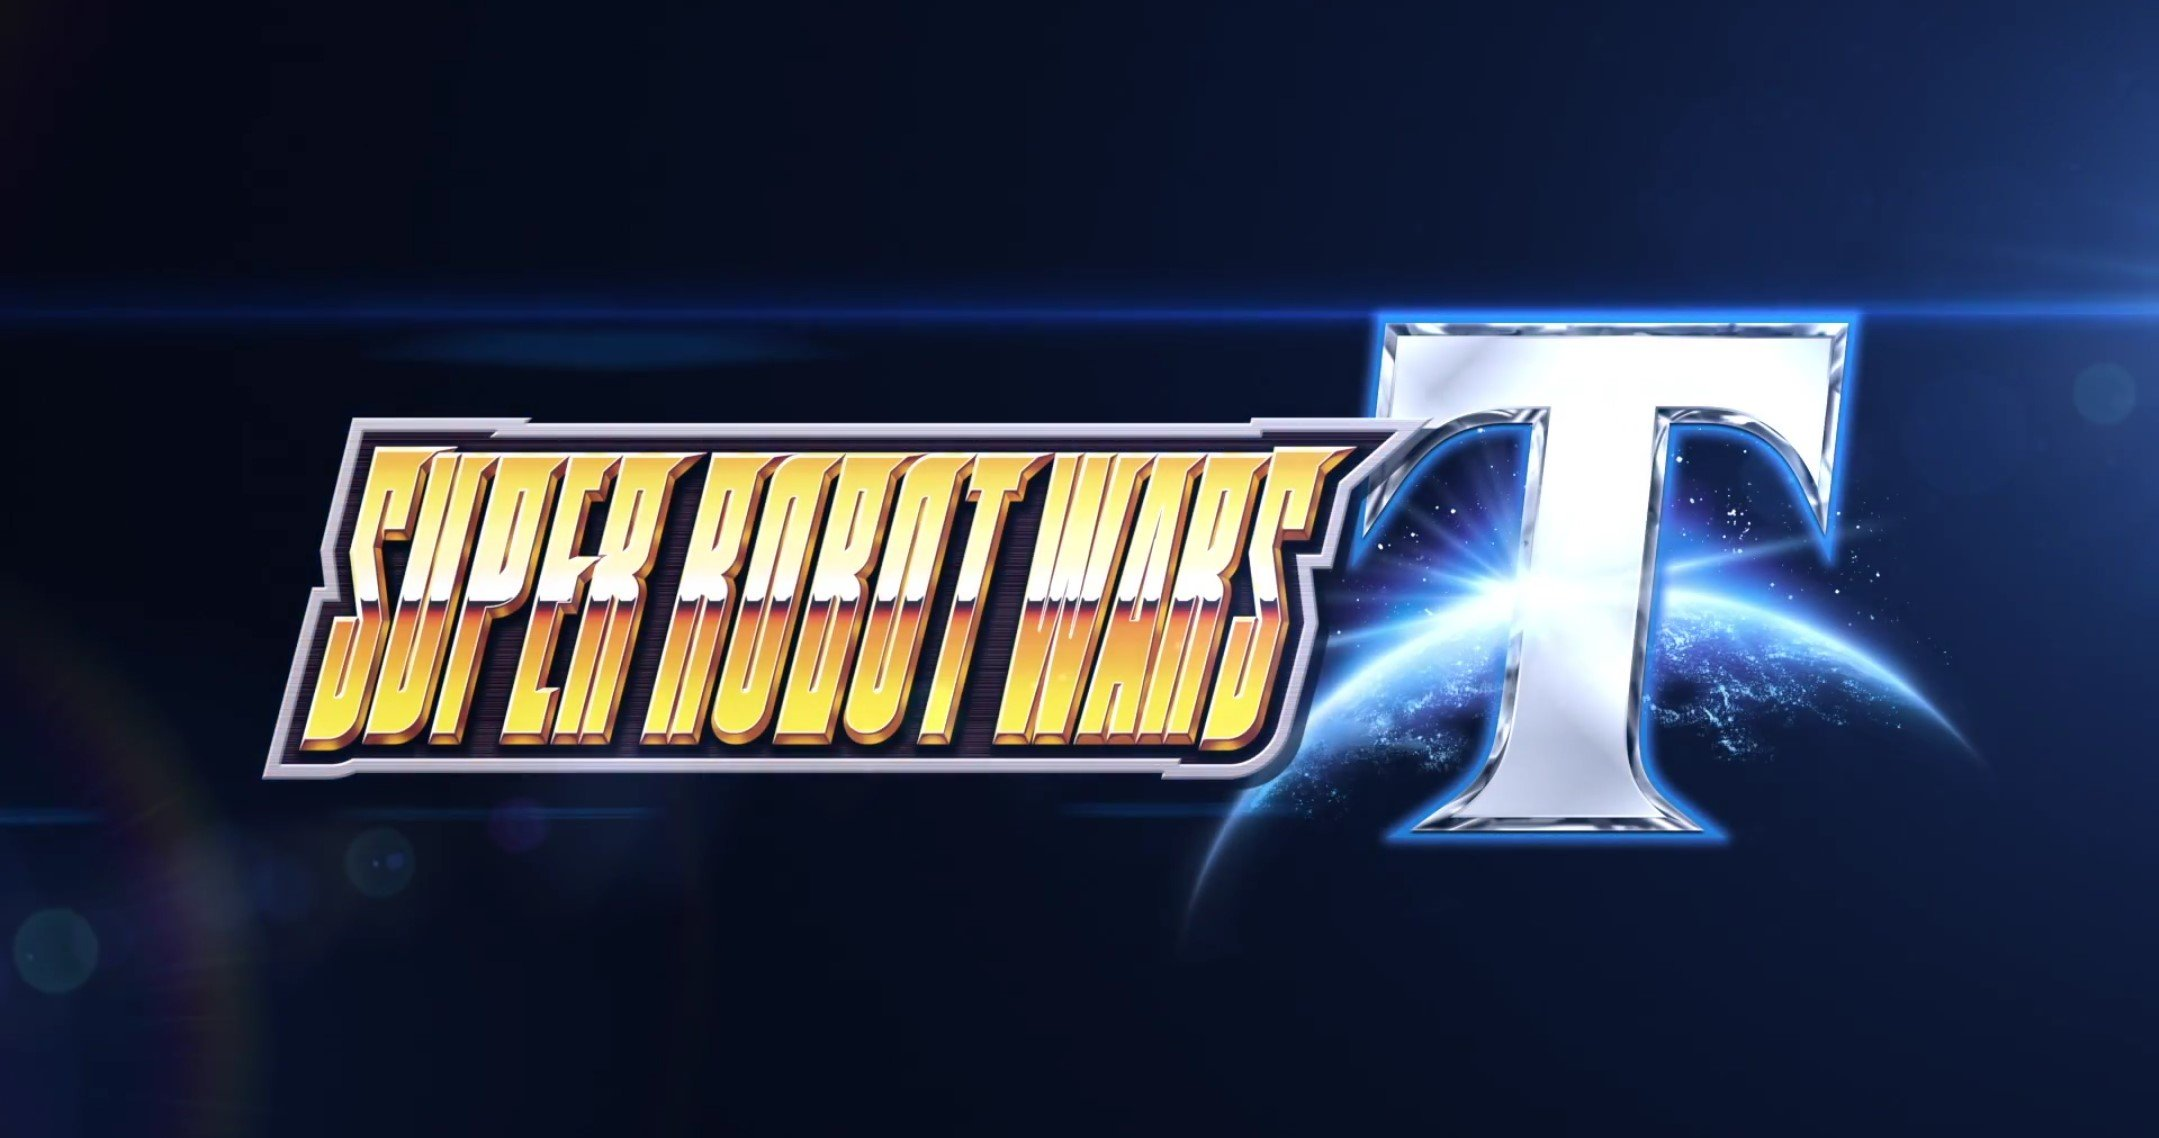 Super Robot Wars T announced for 2019, Cowboy Bebop joins the fun screenshot